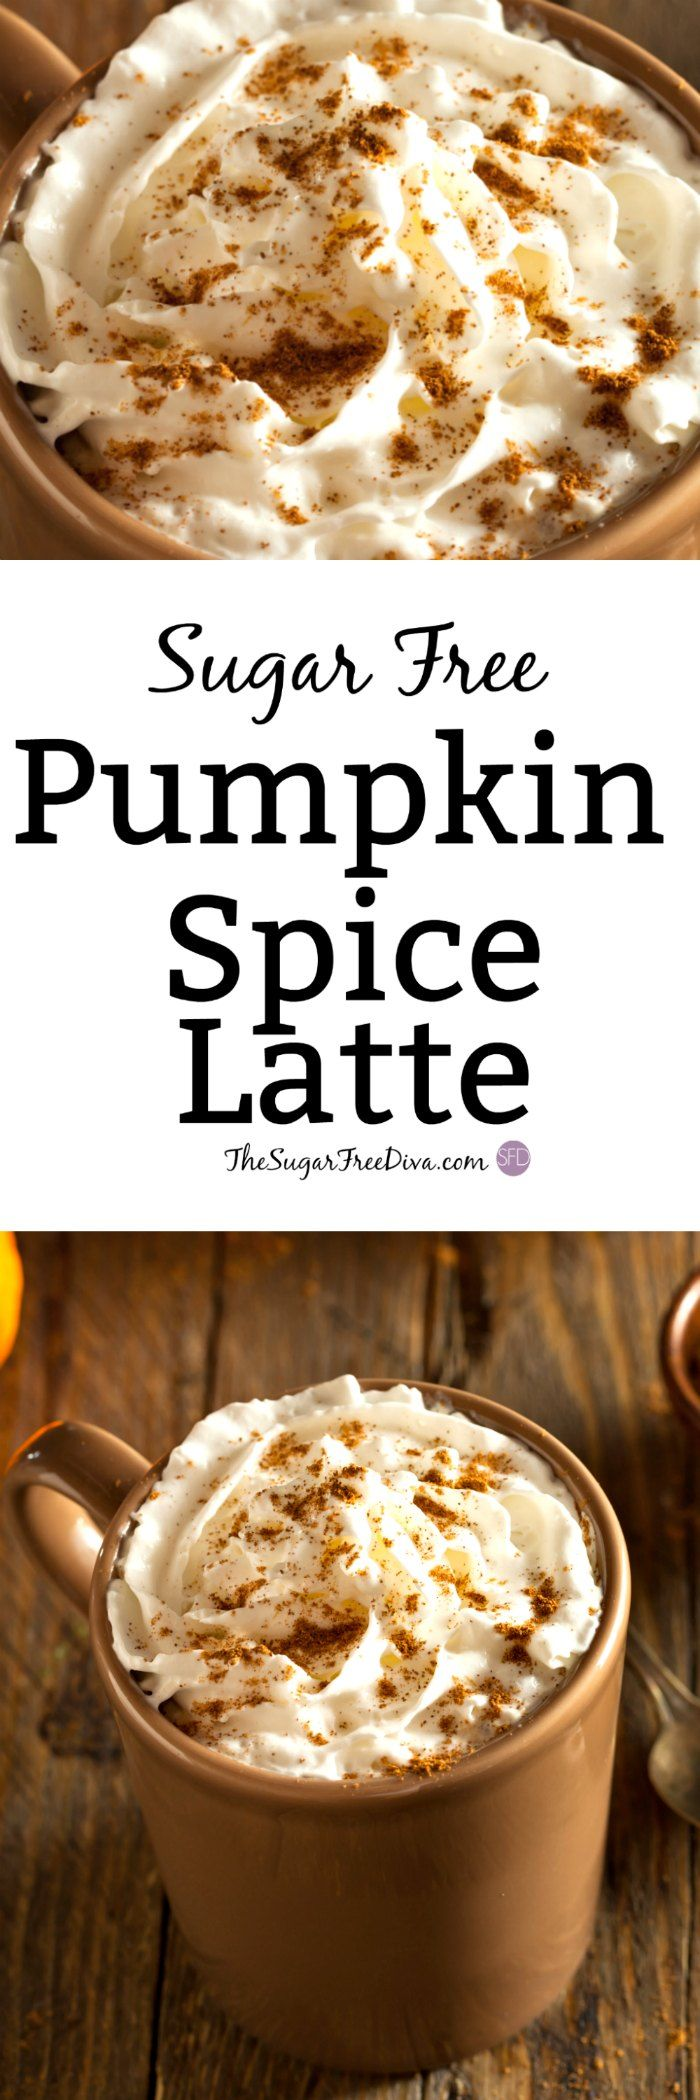 WAIT! Before you spend all that money on a latte  that may also be full with sugar, check this out! It is a recipe for SUGAR FREE PUMPKIN SPICE LATTE! Such an easy and yummy recipe too that you can make at home for this fall or autumn gathering, tailgate, party, or for when you want a treat or a snack. Halloween anyone?